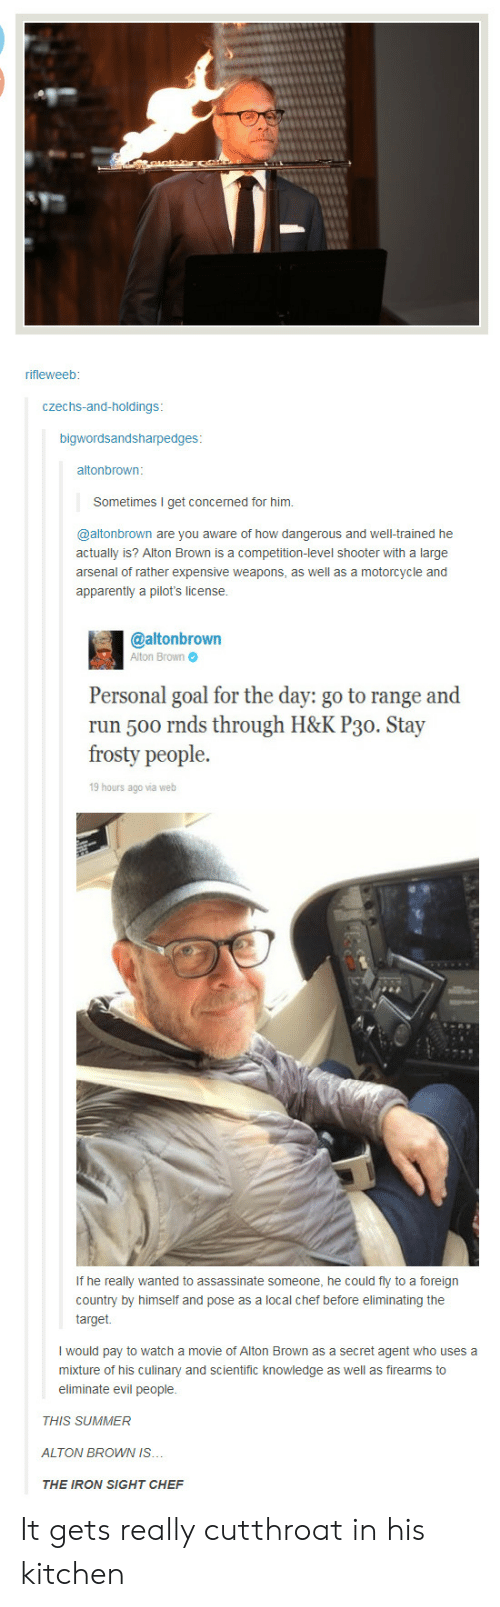 secret agent: rifleweeb  czechs-and-holdings  bigwordsandsharpedges  altonbrown:  Sometimes I get concerned for him.  @altonbrown are you aware of how dangerous and well-trained he  actually is? Alton Brown is a competition-level shooter with a large  arsenal of rather expensive weapons, as well as a motorcycle and  apparently a pilot's license  @altonbrown  Alton Brown  Personal goal for the day: go to range and  run 500 rnds through H&K P30. Stay  frosty people.  19 hours ago via web  If he really wanted to assassinate someone, he could fly to a foreign  country by himself and pose as a local chef before eliminating the  at.  I would pay to watch a movie of Alton Brown as a secret agent who uses a  mixture of his culinary and scientific knowledge as well as firearms to  eliminate evil people  THIS SUMMER  ALTON BROWN IS..  THE IRON SIGHT CHEF It gets really cutthroat in his kitchen